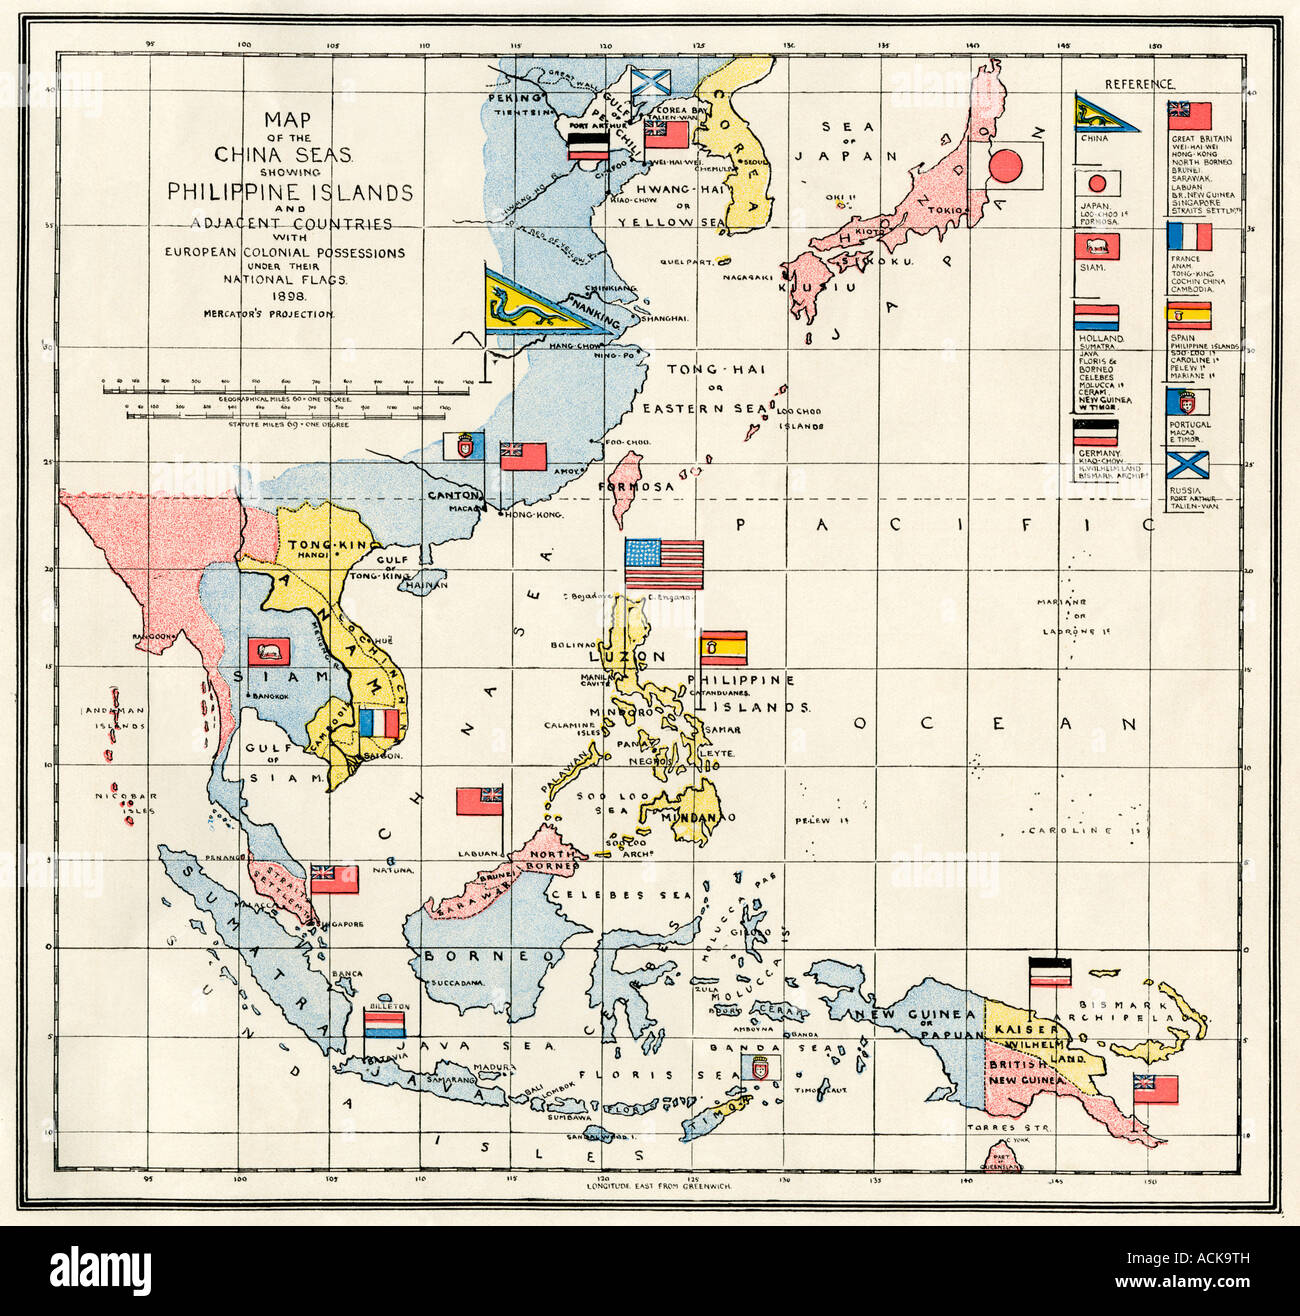 Map of the China Sea, the Philippines, and European colonies in the southeast Asia region 1898. Color lithograph - Stock Image